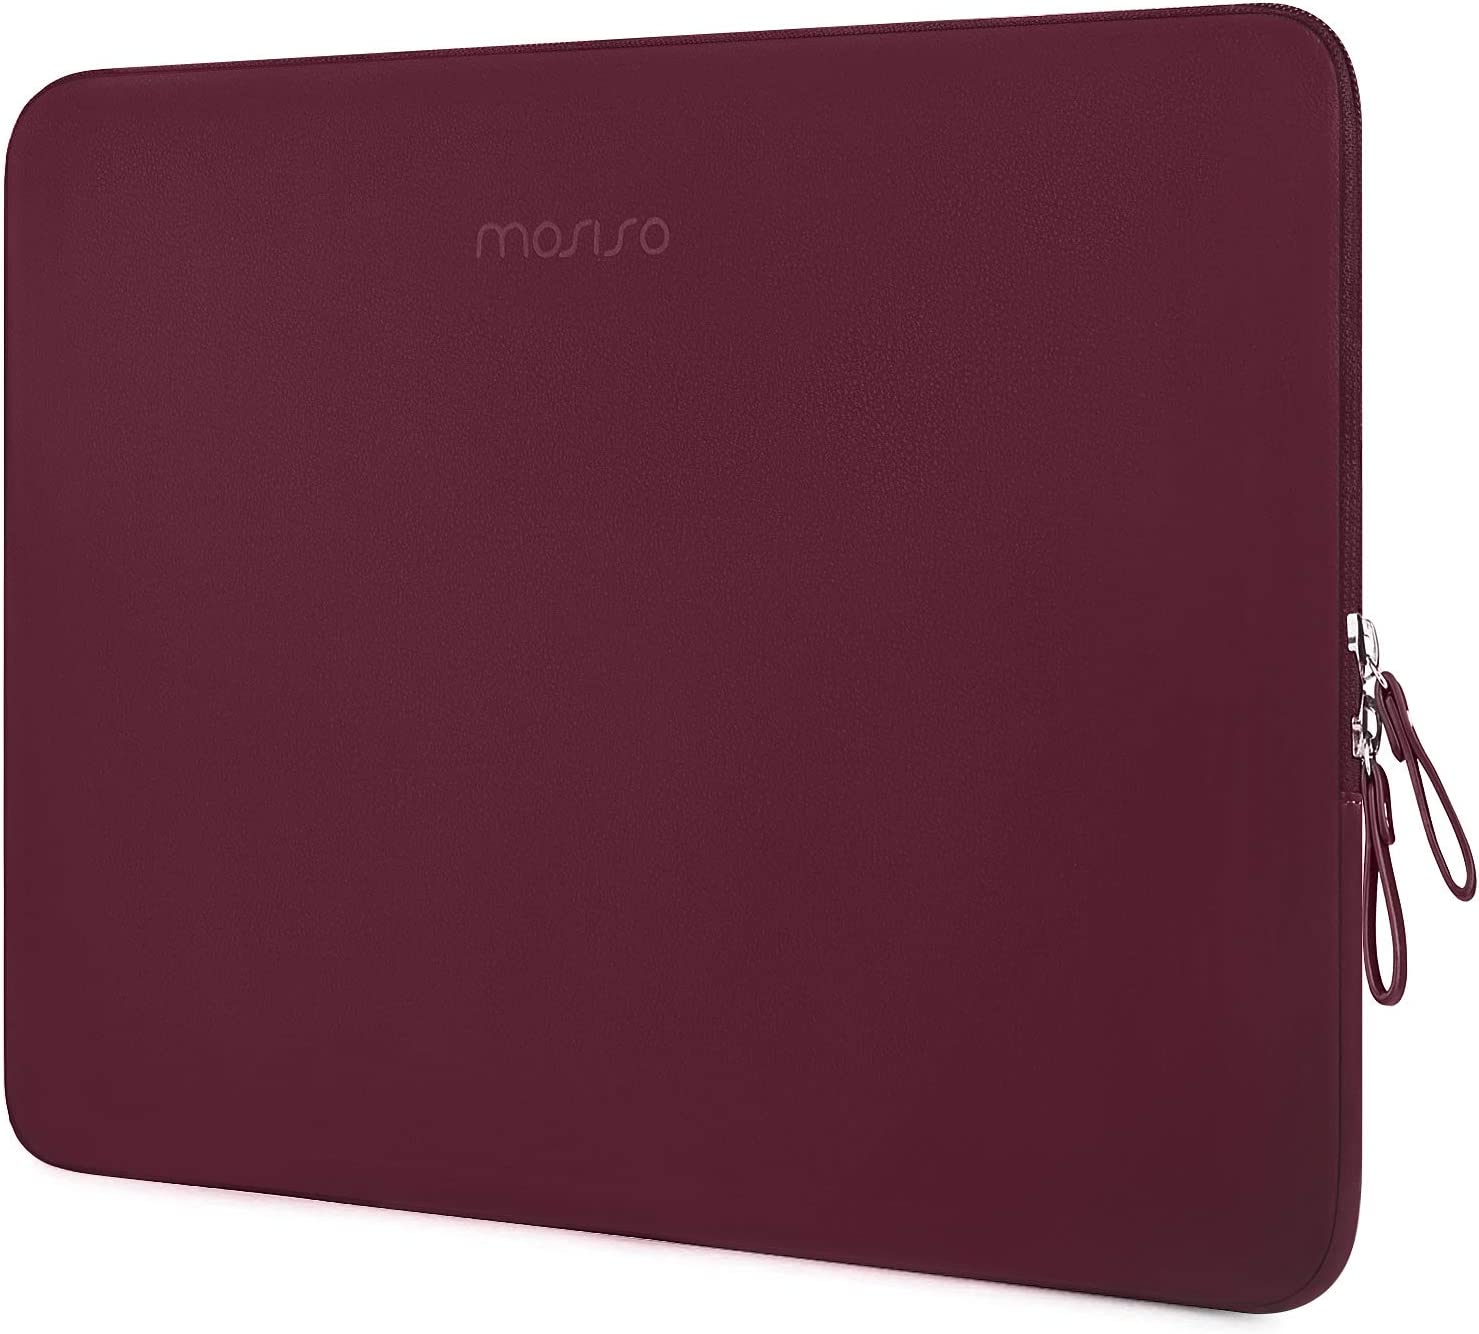 MOSISO Laptop Sleeve Compatible with 13-13.3 Inch MacBook Air/MacBook Pro Retina/2019 2018 Surface Laptop 3/2/Surface Book 2, PU Leather Super Padded Bag Waterproof Protective Case, Wine Red